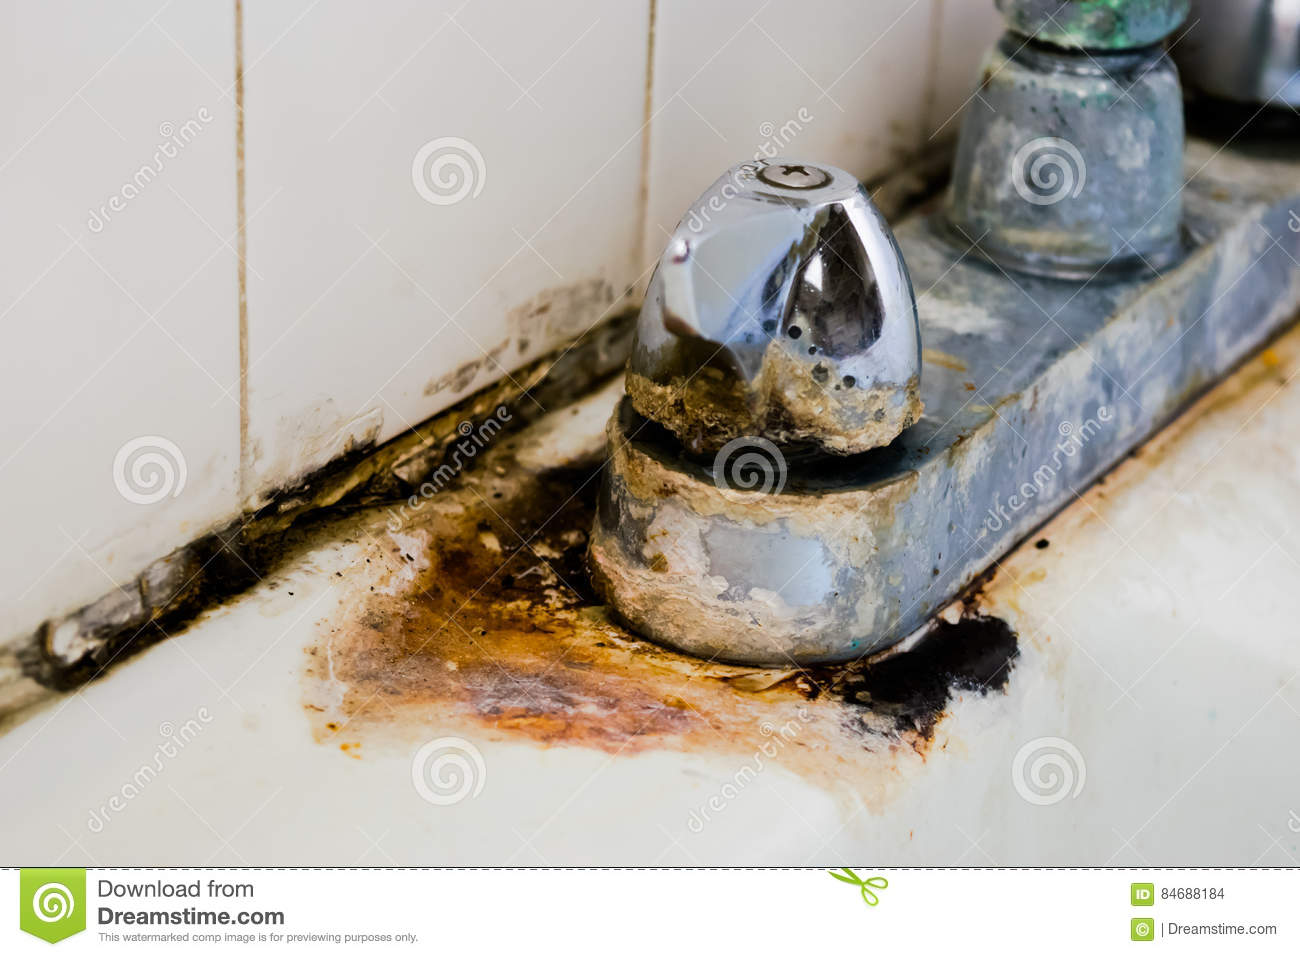 Hard Water Deposit And Rust On Chrome Faucet Stock Photo - Image of ...